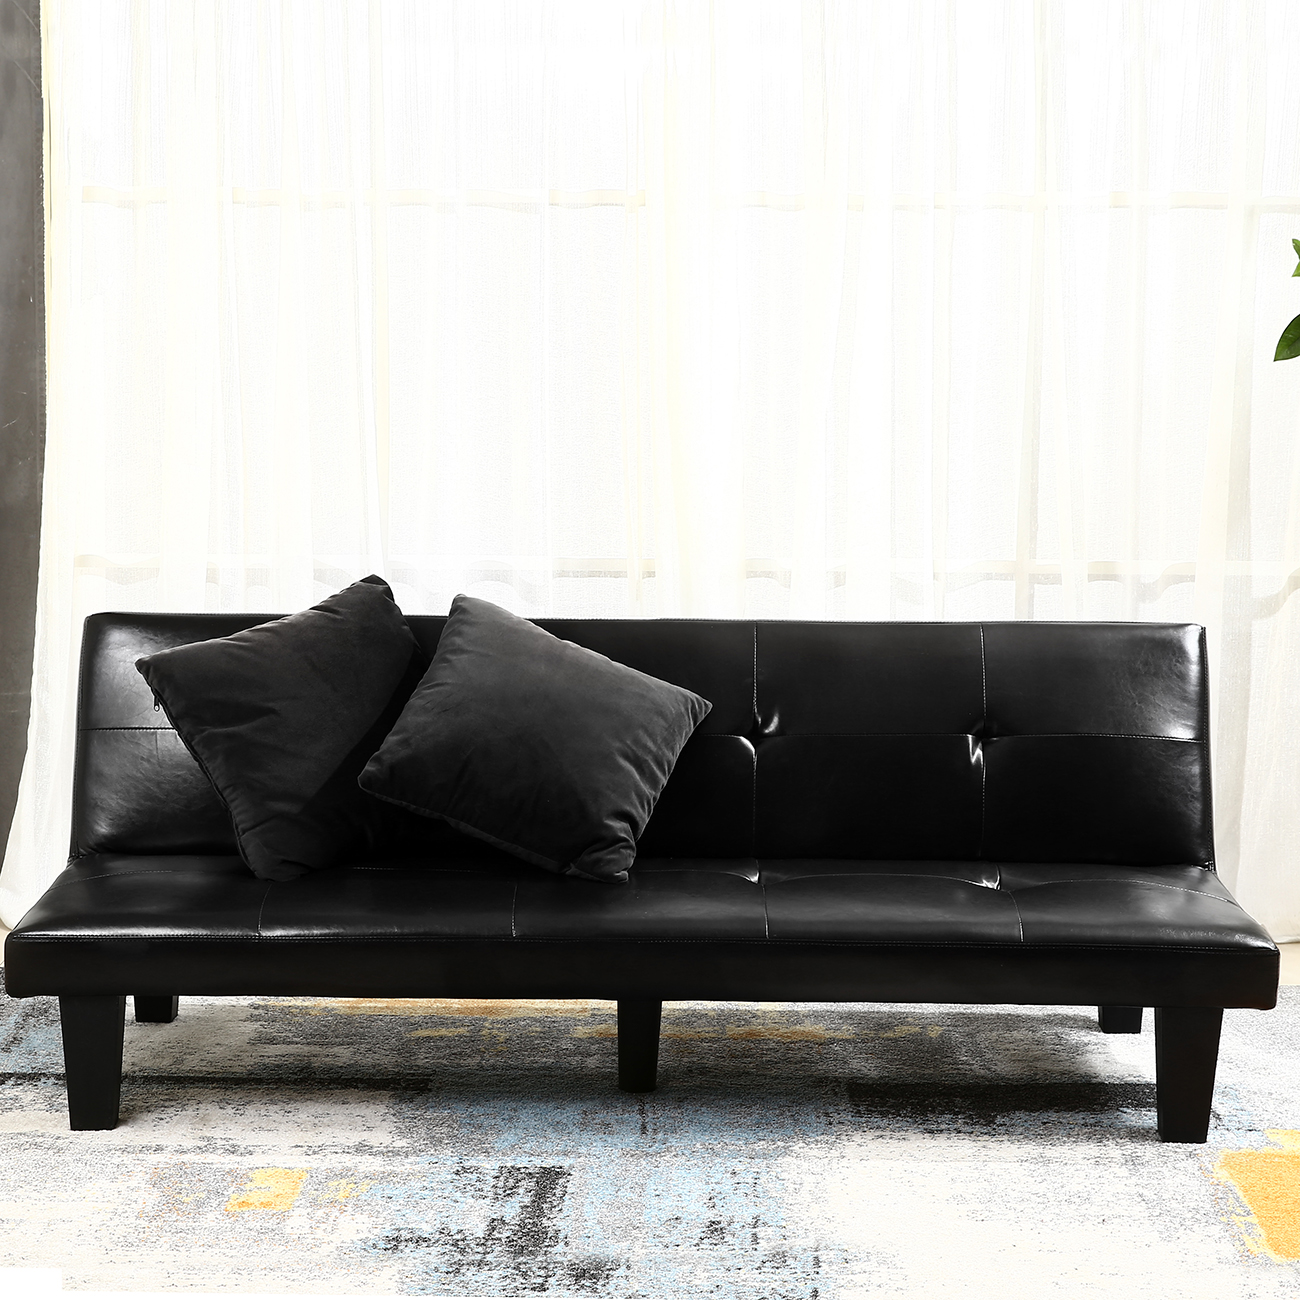 NEW Futon Sofa Bed Convertible Couch Loveseat Dorm